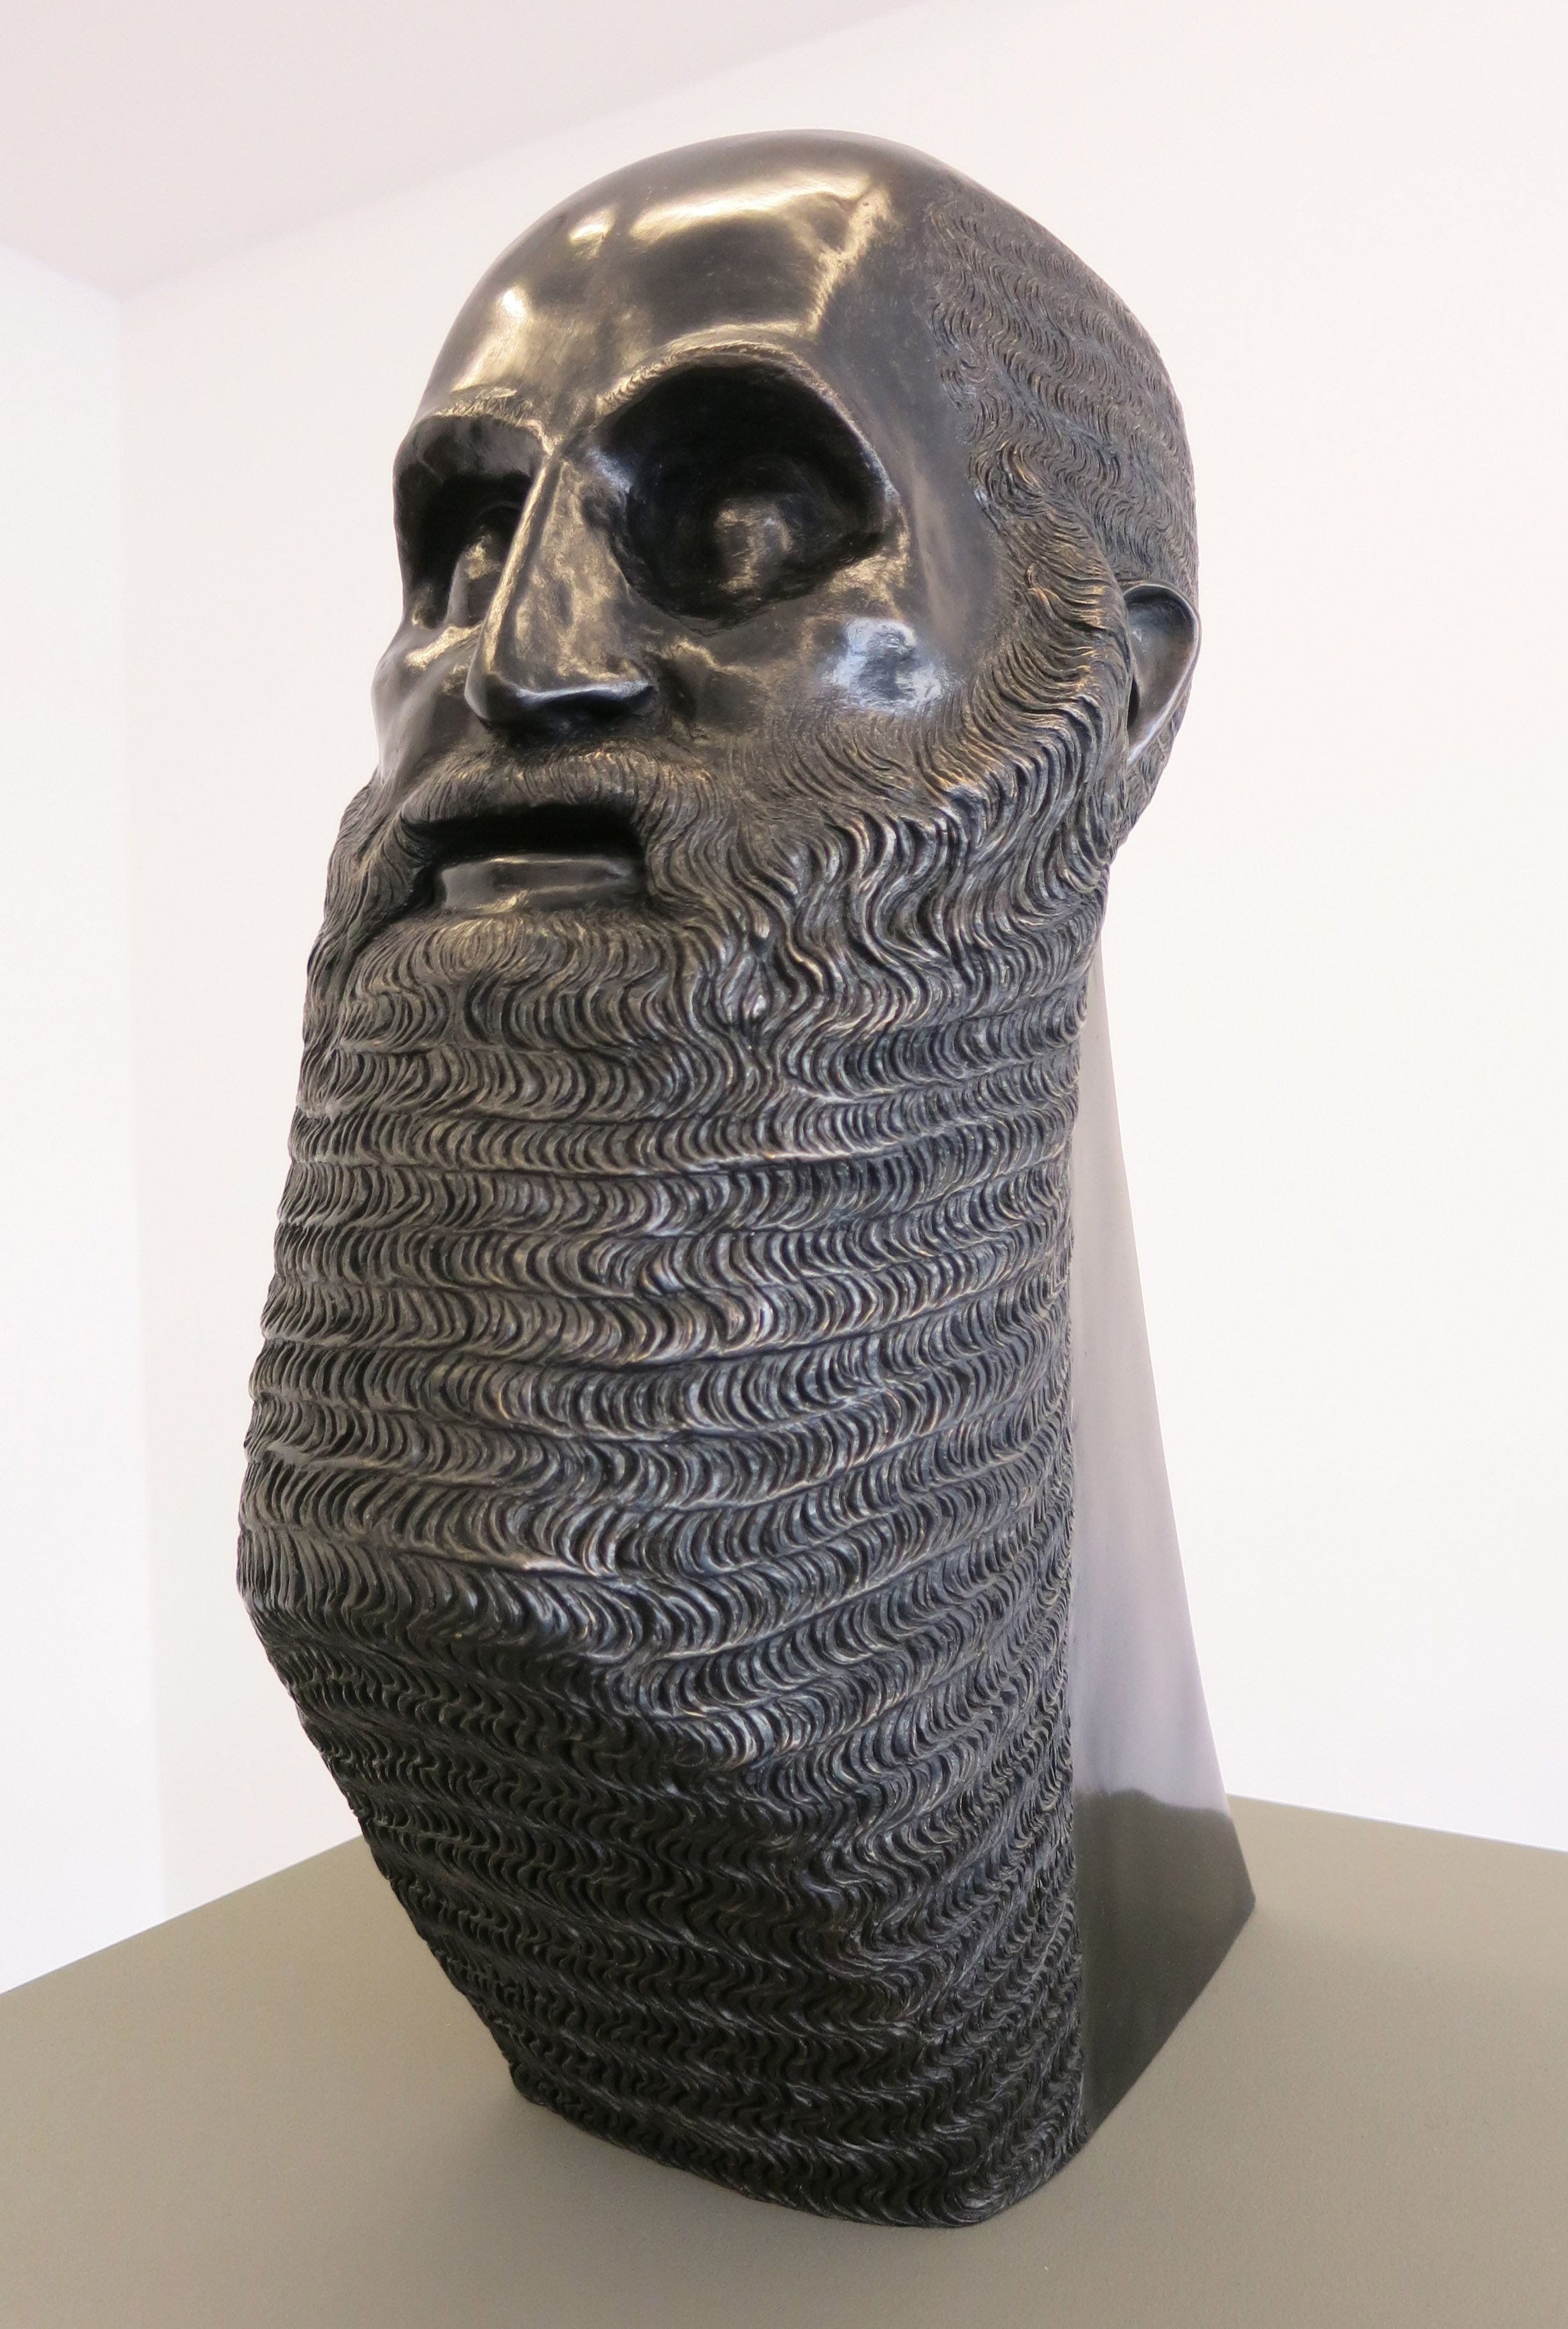 Saying her art practice is about 'mistranslating the history of ancient objects,' Brooklyn-based sculptor Sarah Peters 'misinterprets' Akkadian rulers, Greek busts and more with stunning results in several bronze heads at LES gallery Eleven Rivington. (Through May 17th).Sarah Peters, Portrait of a Bearded Man with Triangular Base, bronze, 17.5 x 7 x 13 inches, 2015.